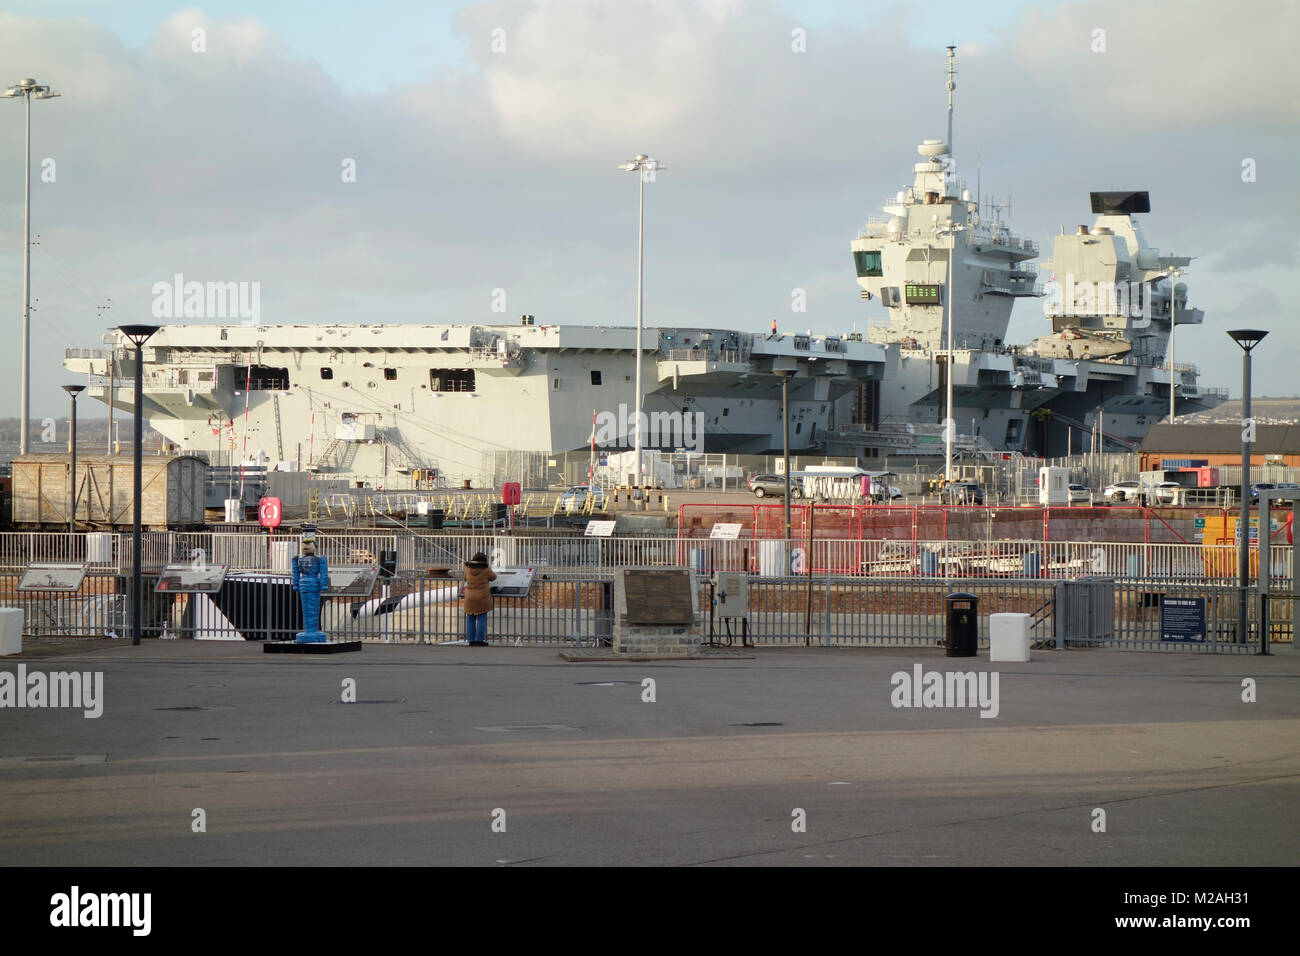 HMS Queen Elizabeth - Aircraft Carrier docked in HM Naval Base Portsmouth, Hampshire, United Kingdom Stock Photo